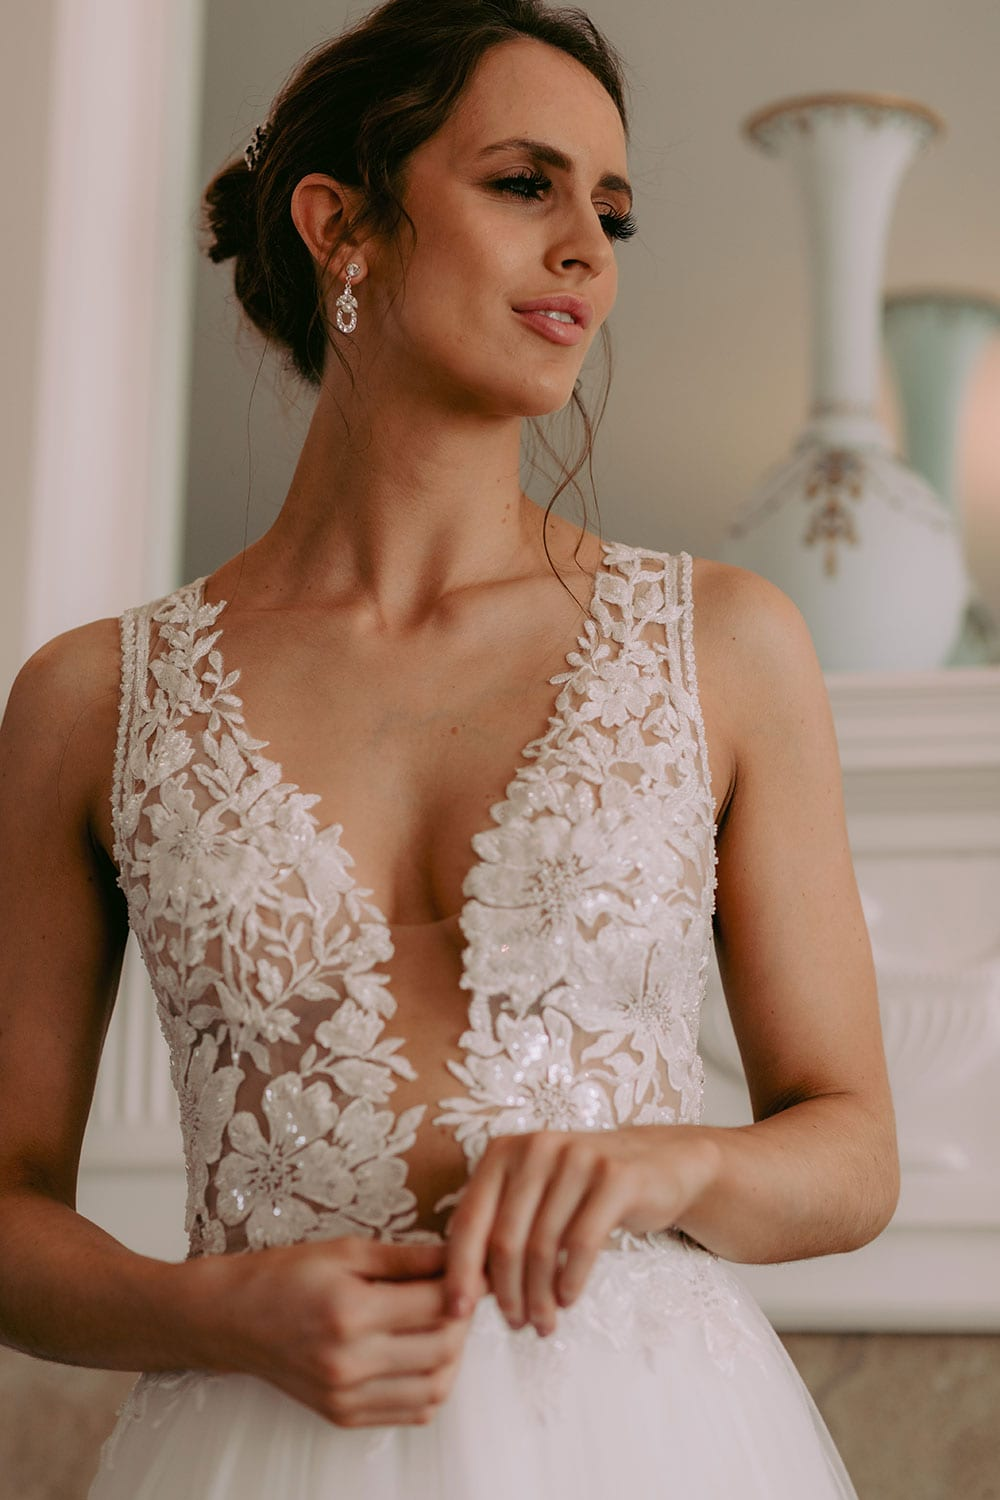 Tia Wedding gown from Vinka Design - This dreamy sculpted wedding dress has a deep V-shaped illusion neckline with beaded floral lace and an open back. The skirt has layers of soft tulle that glide with movement. Model wearing gown showing lace detail of dress bodice and straps, and V-neckline, inside warmly lit heritage room.